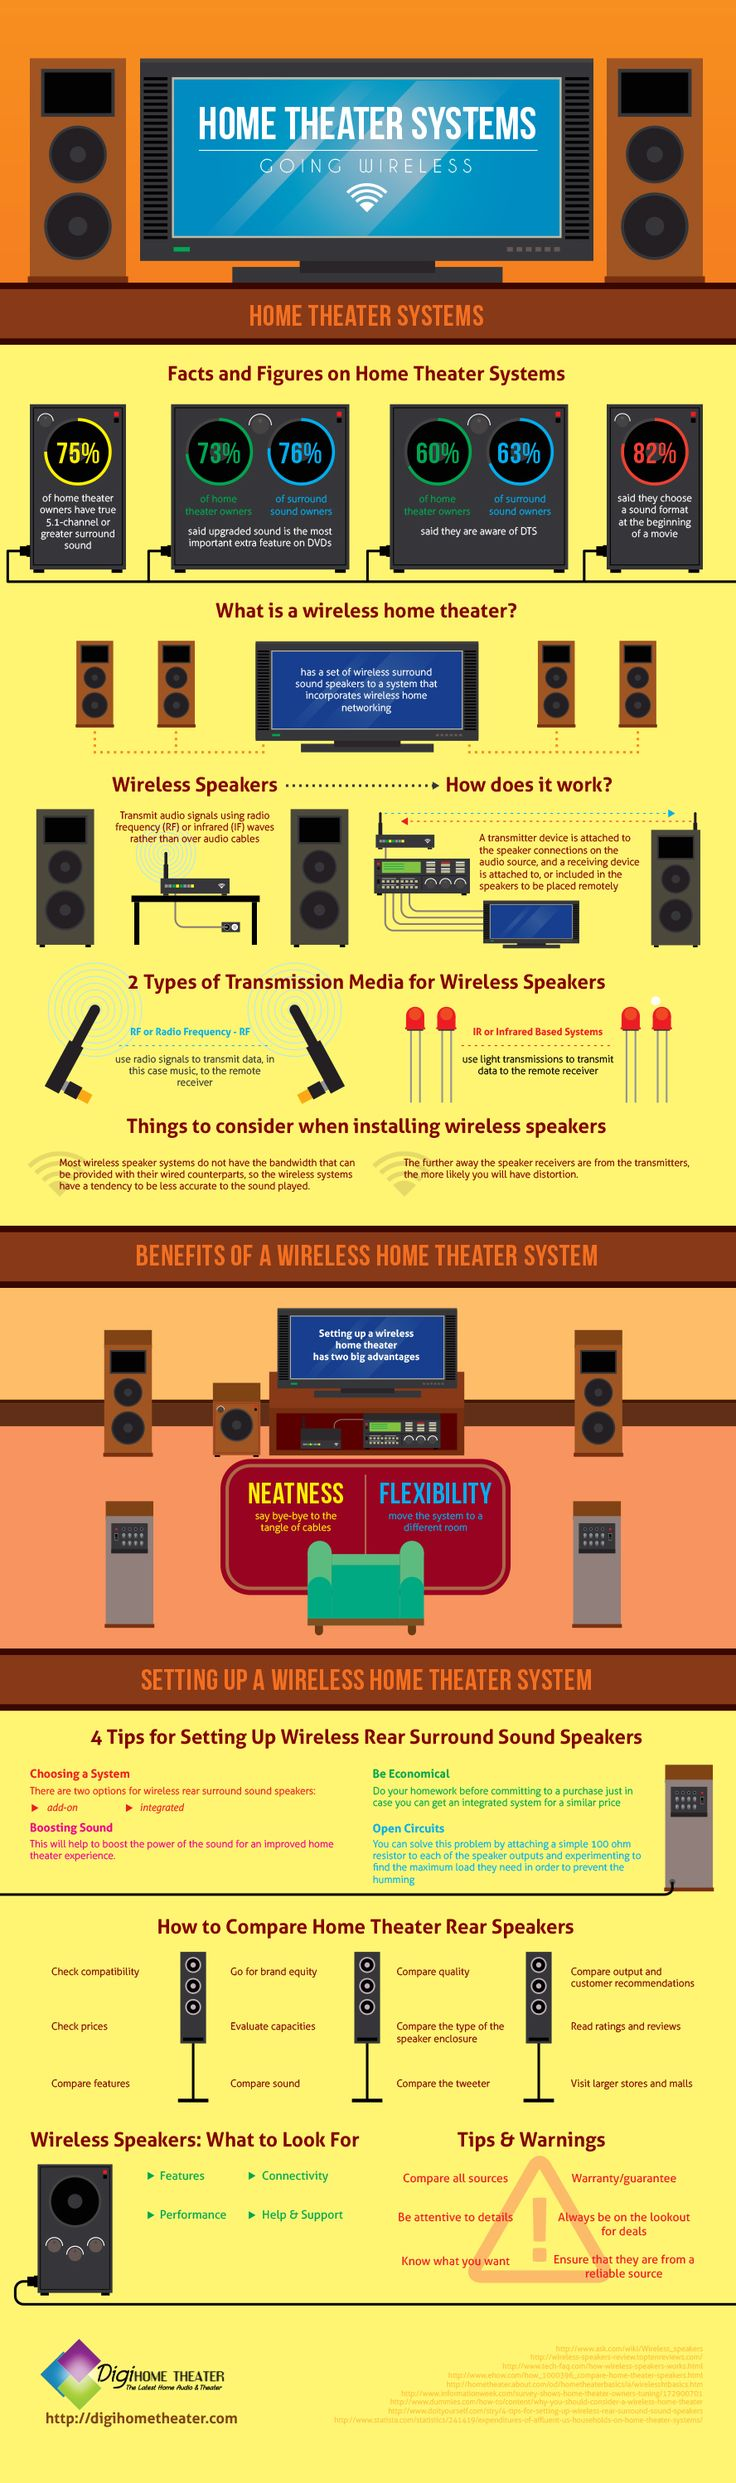 Home Theater Systems Going Wireless